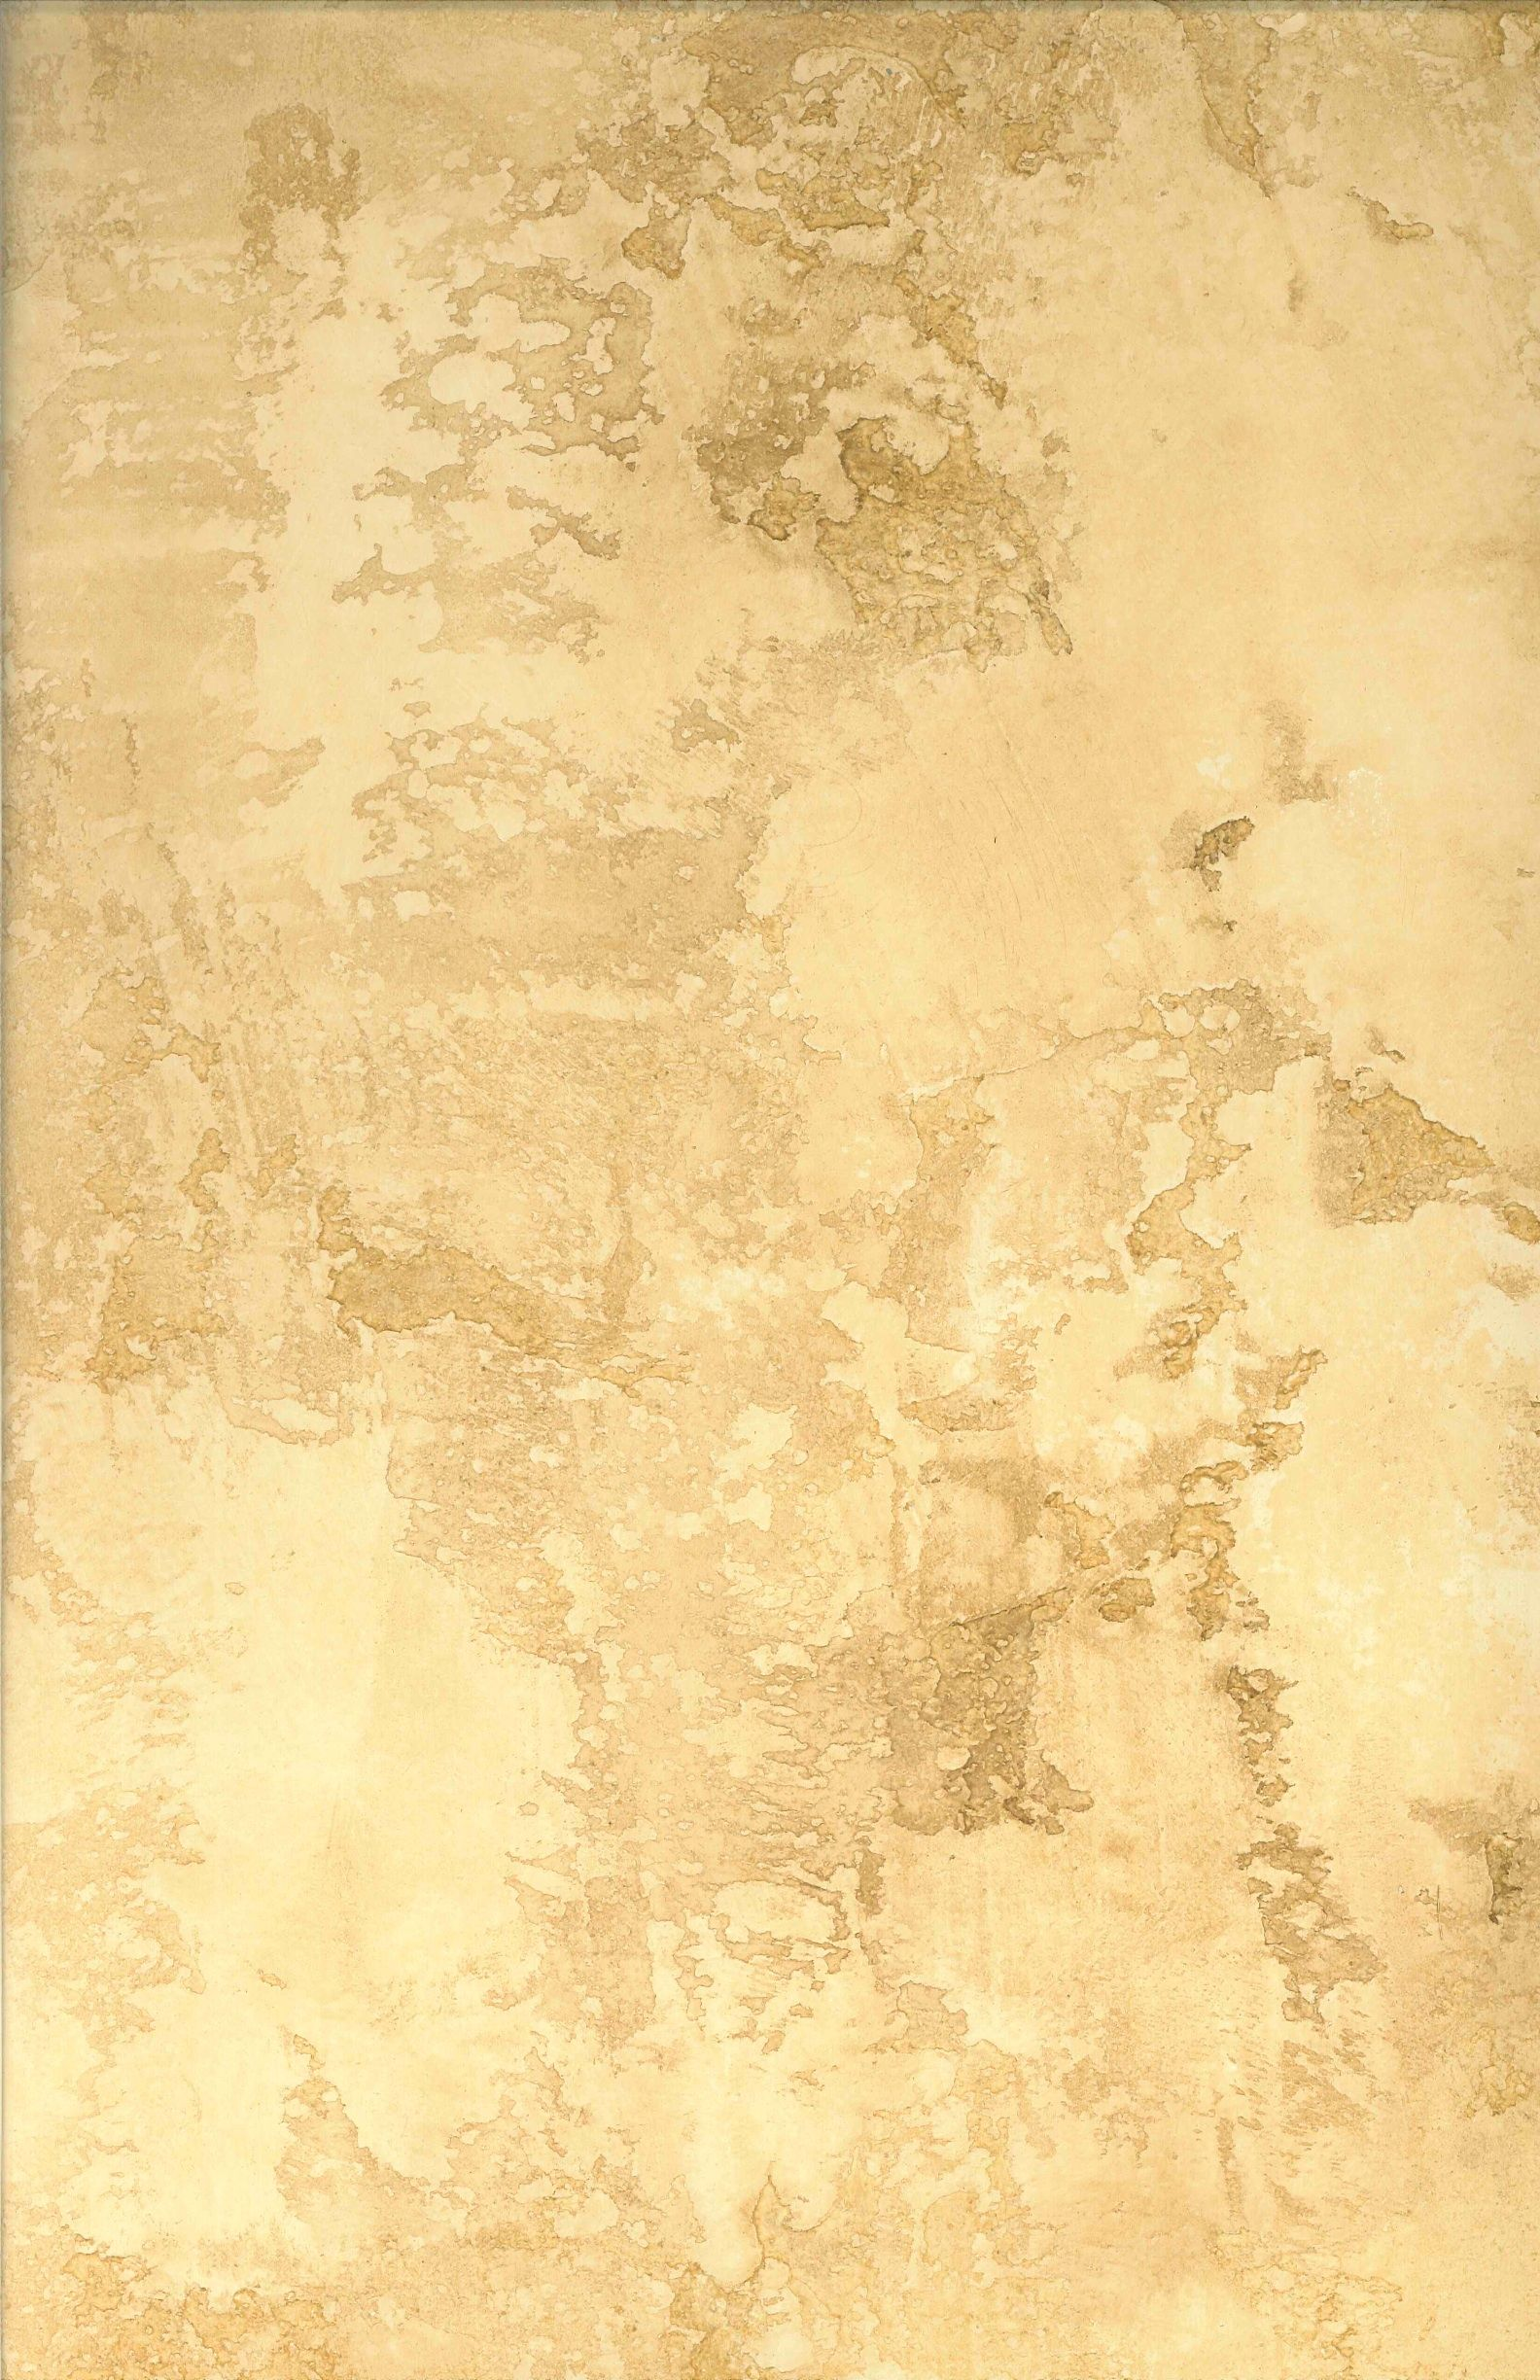 Distressed Marmorino Venetian Plaster For Walls I Like